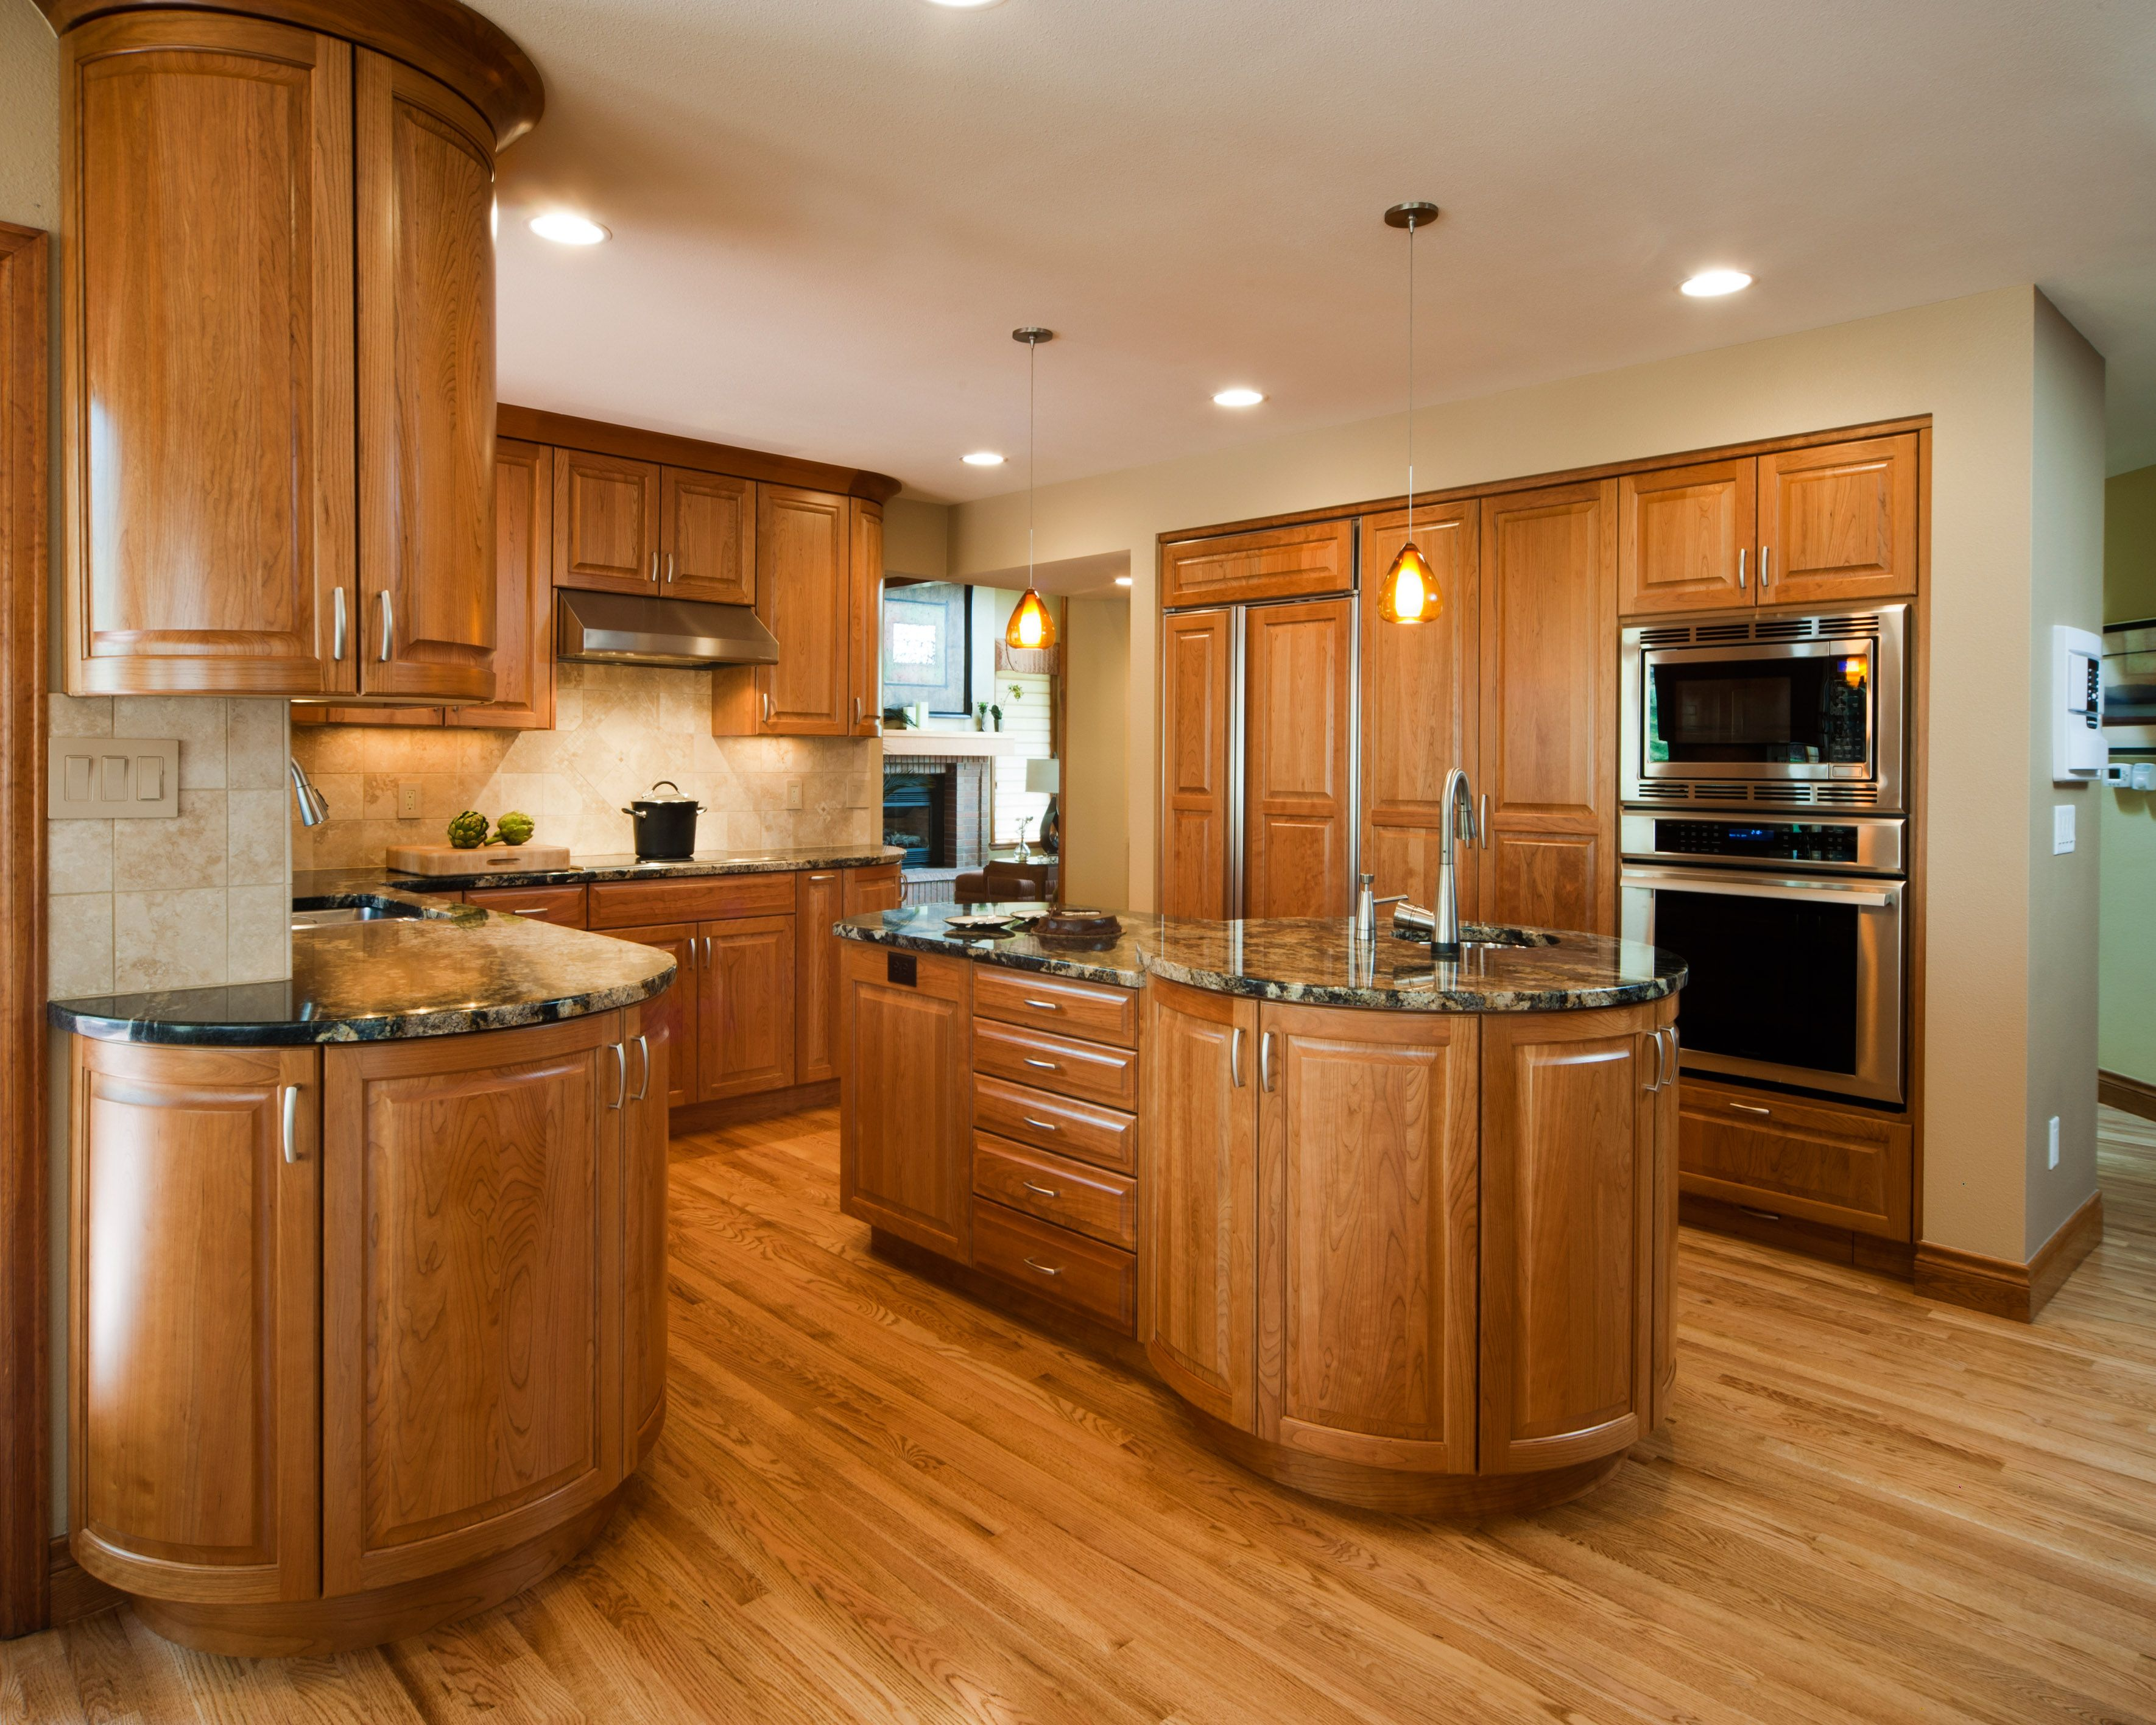 Kitchen Design Boulder Photo © 2012 Parrish Construction Boulder Co 3034440033